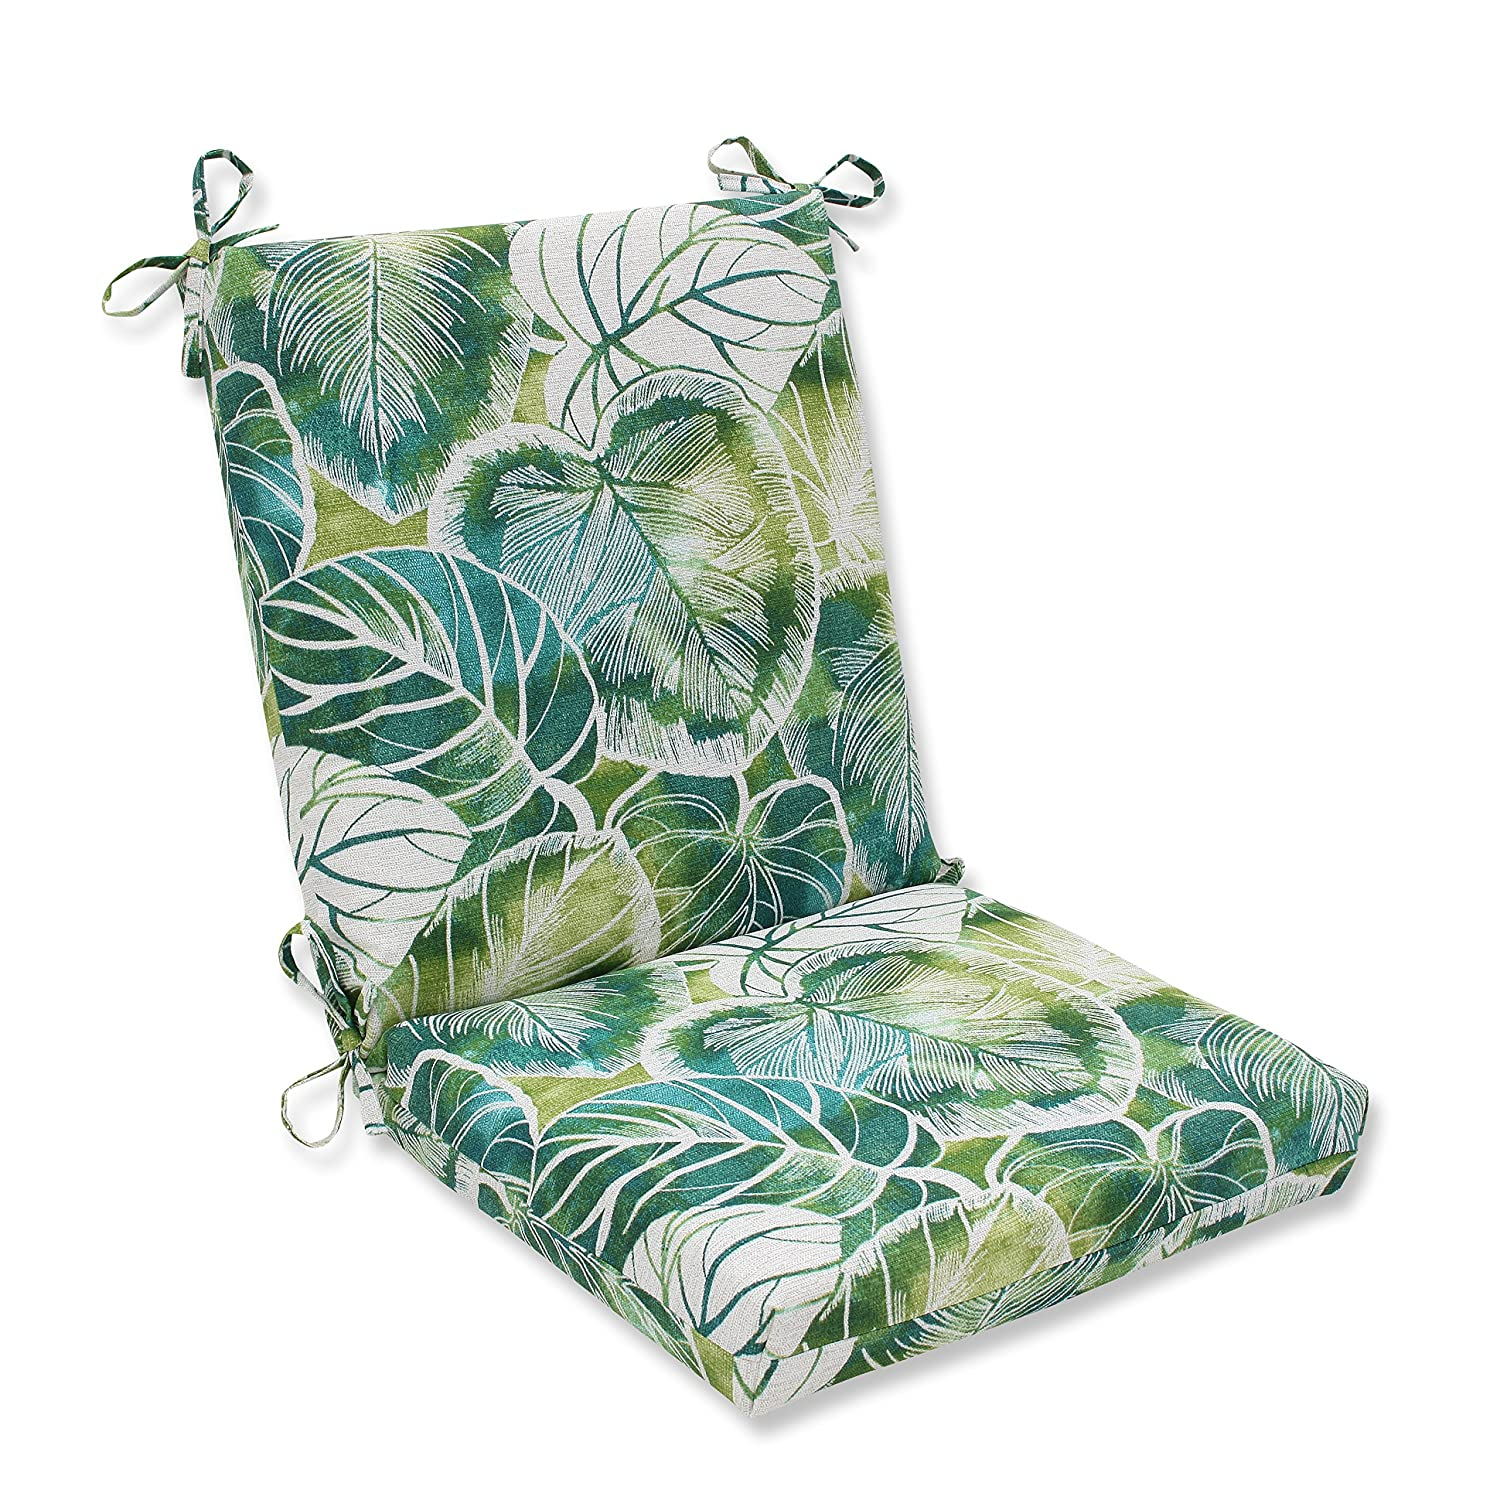 Pillow Perfect Outdoor Indoor Key Cove Lagoon Squared Corners Chair Cushion